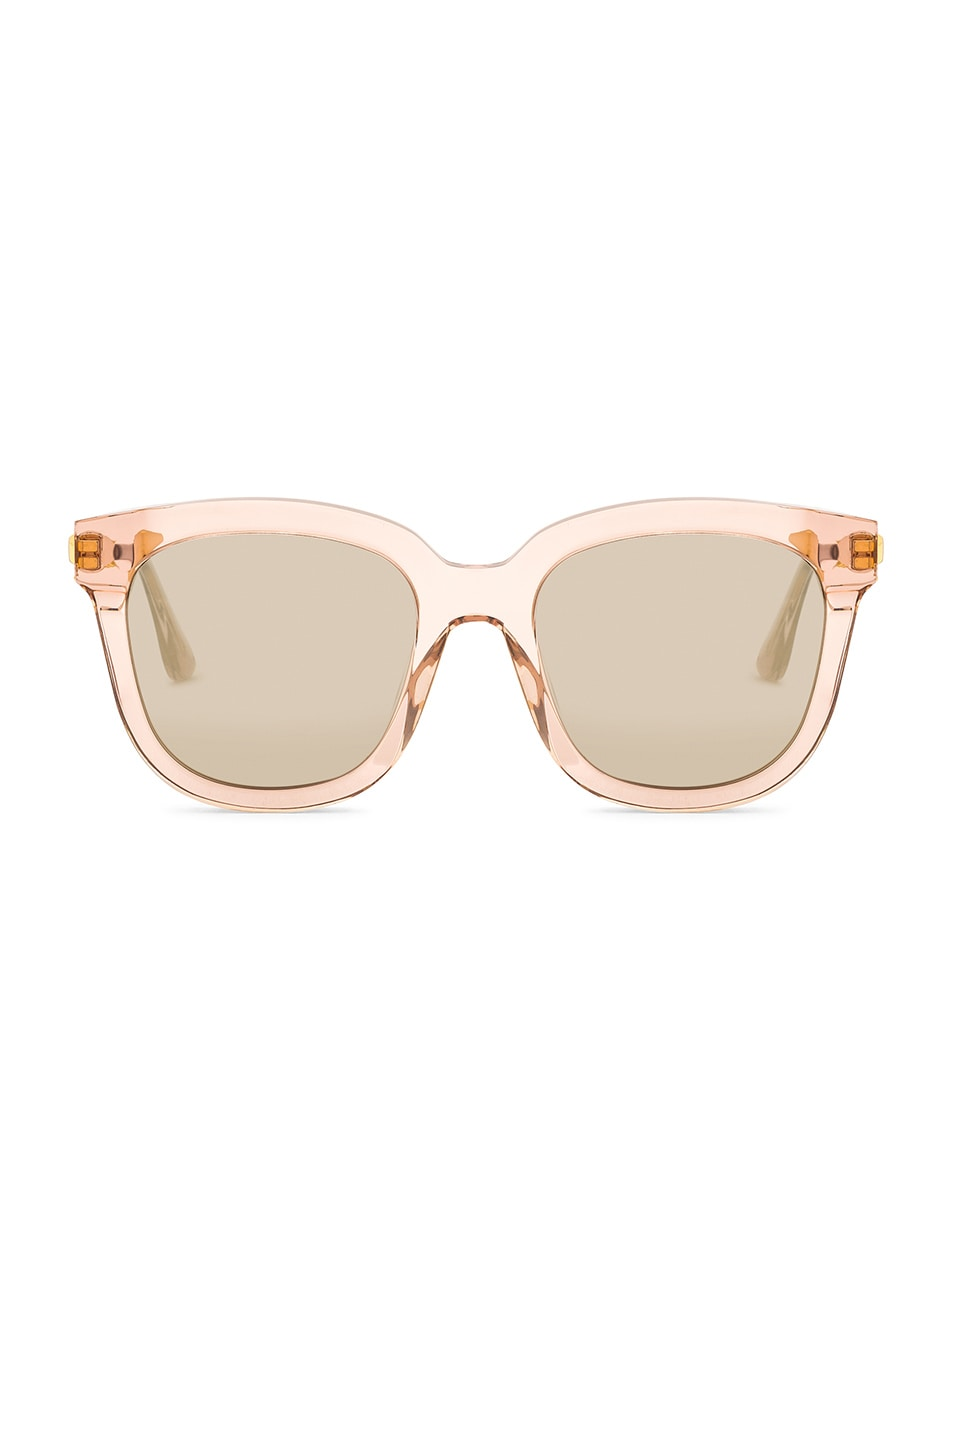 0045cb5b41d9 Image 1 of Gentle Monster Absente Sunglasses in Pink   Gold